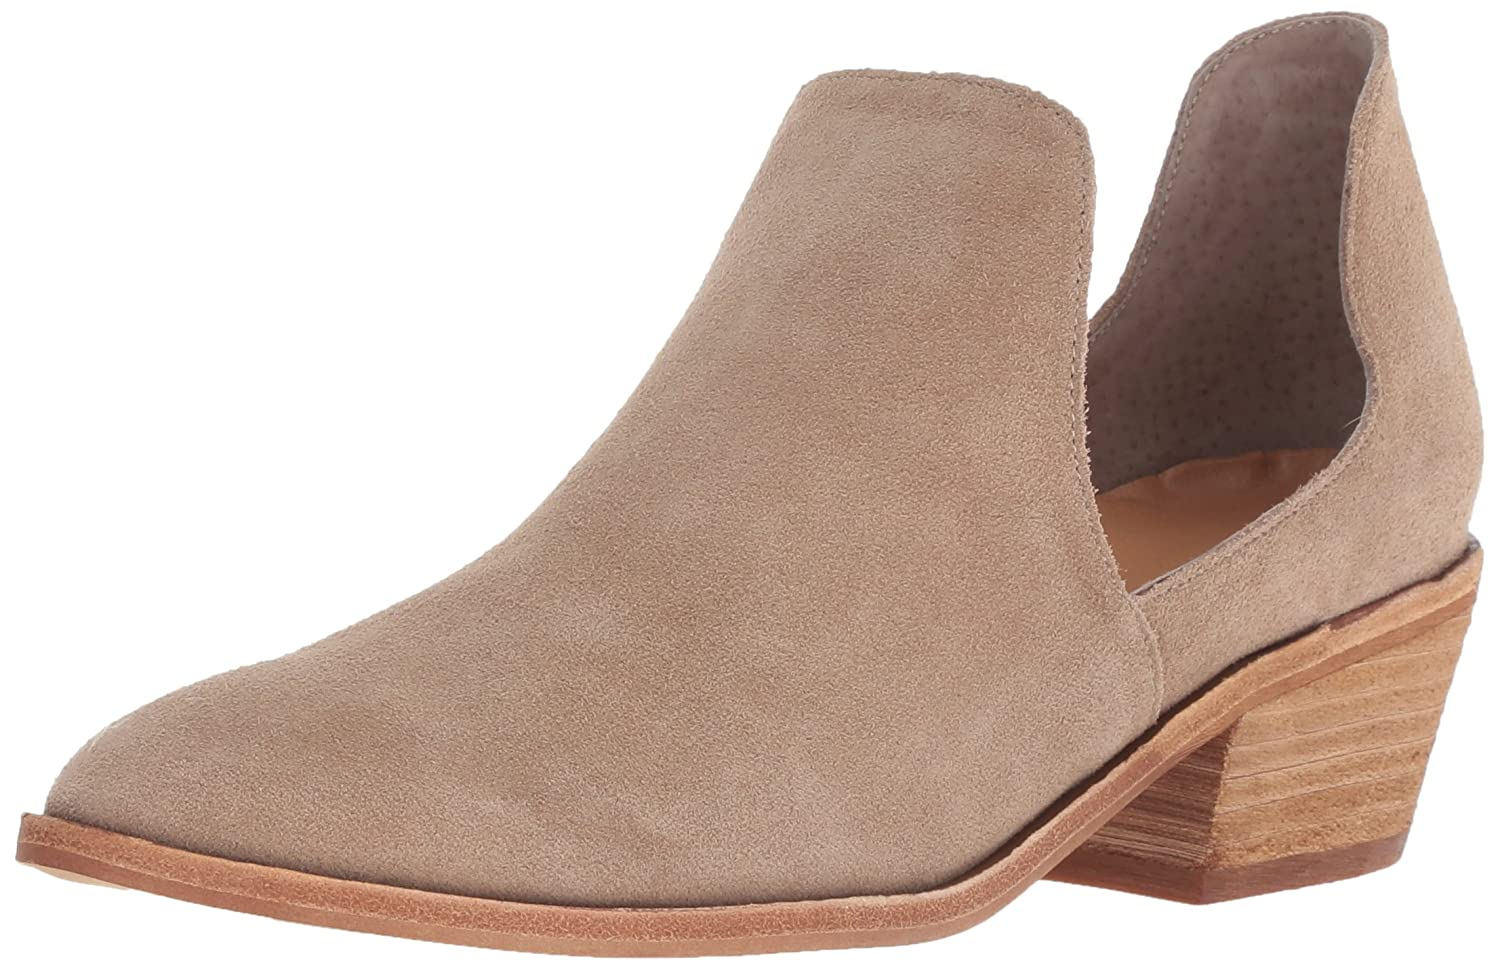 Chinese Laundry Women's Focus Ankle Bootie B07C8LR4CD 11 B(M) US|Mink Suede